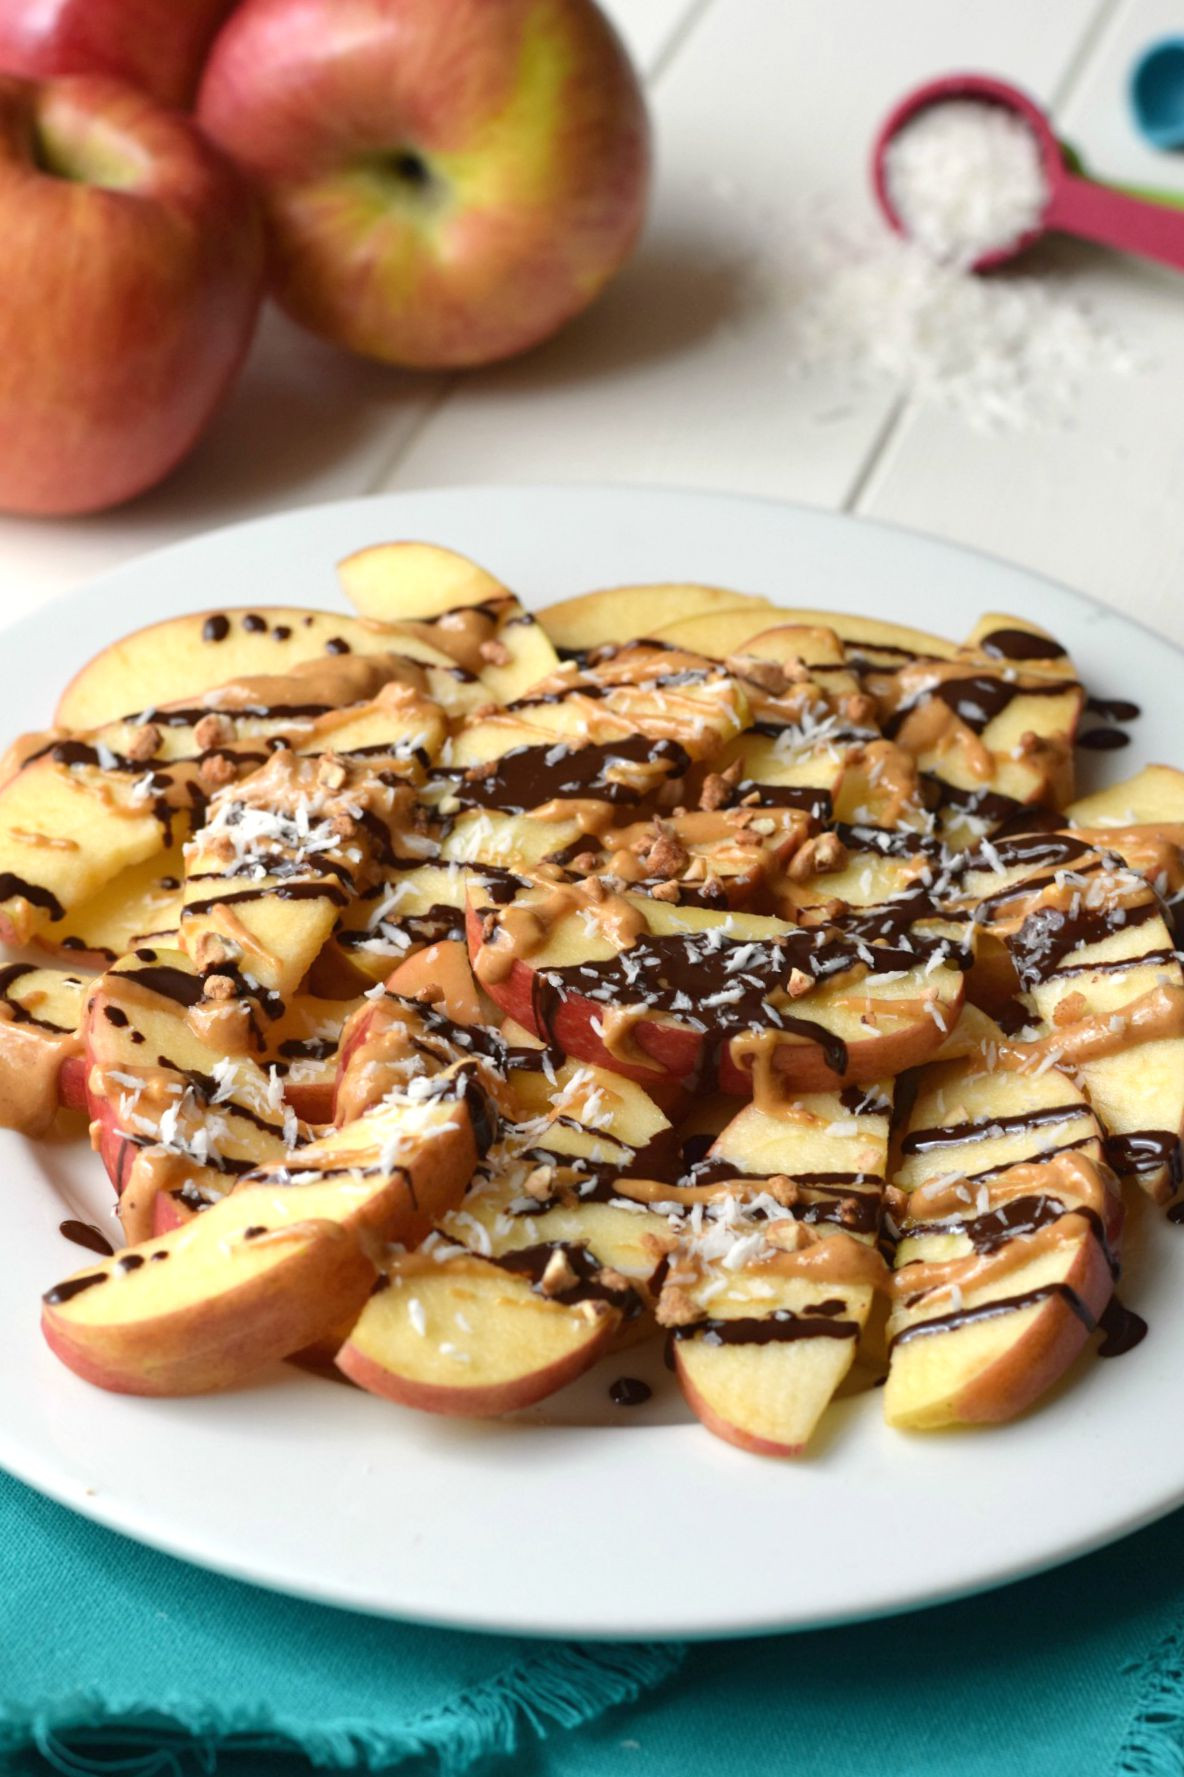 Healthy Candy Snacks  Dark Chocolate Peanut Butter Apples Feel Great in 8 Blog